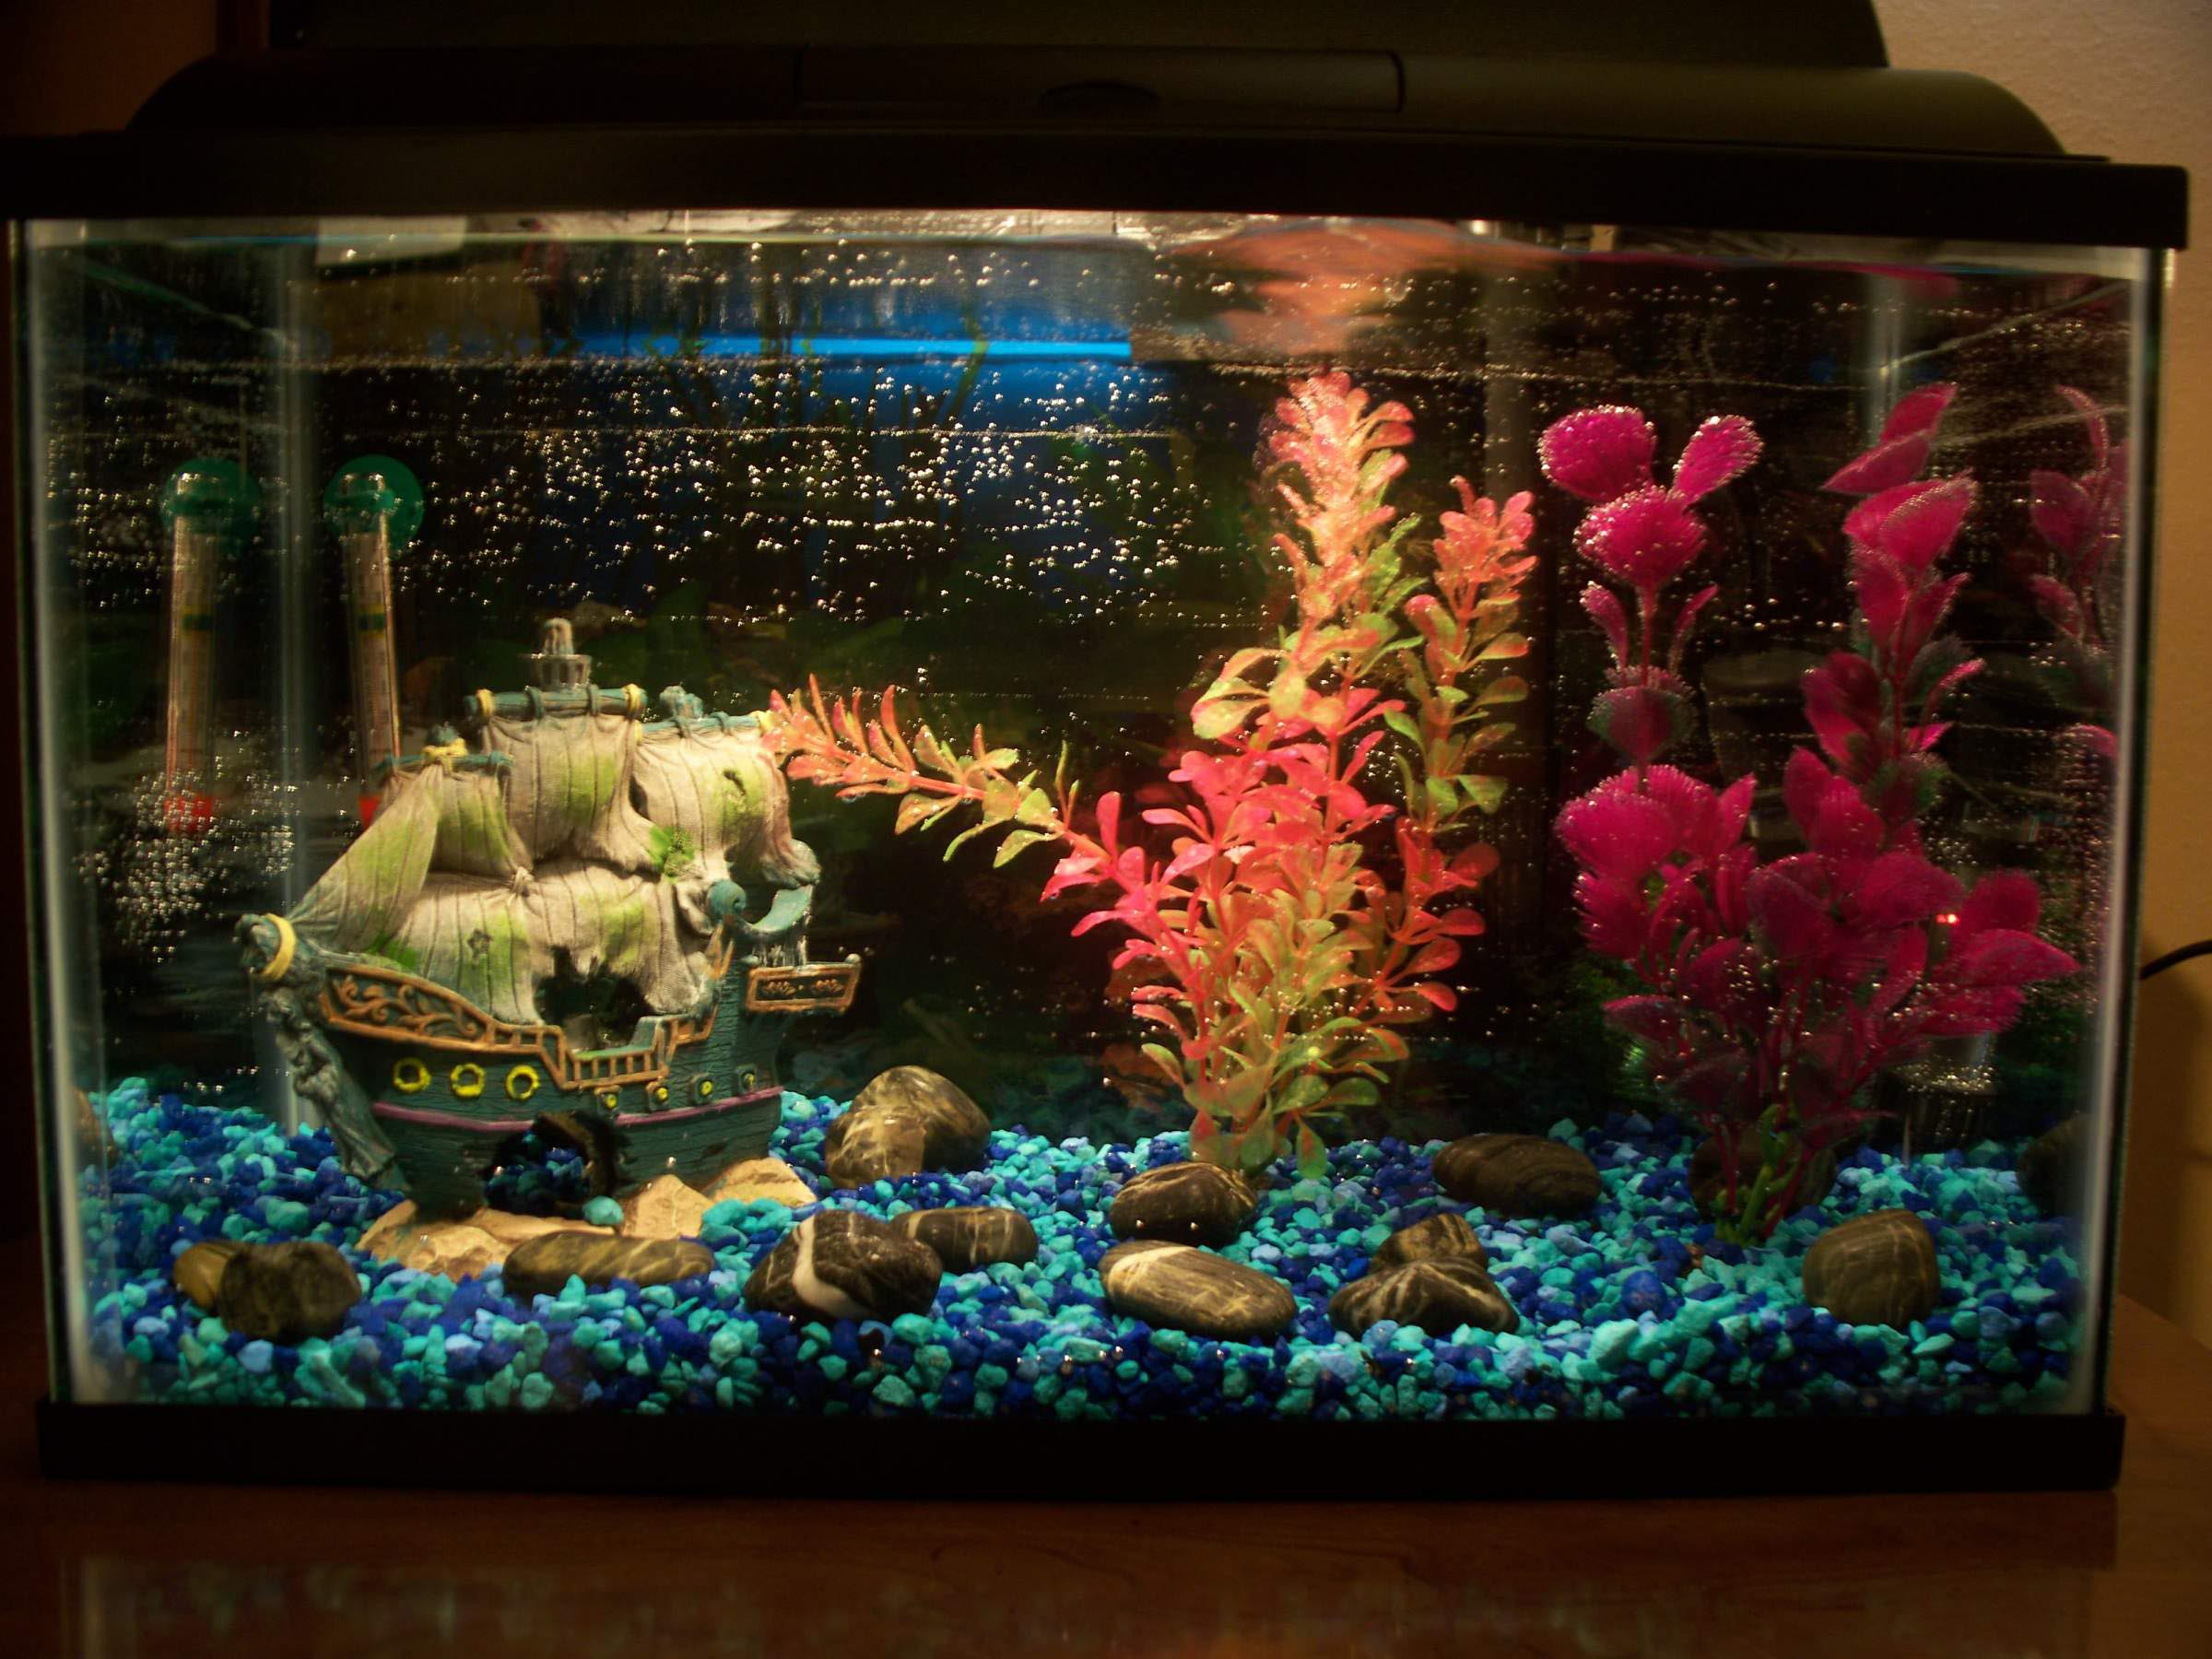 How to set up a betta fish aquarium aquarium design ideas for Freshwater fish tank setup